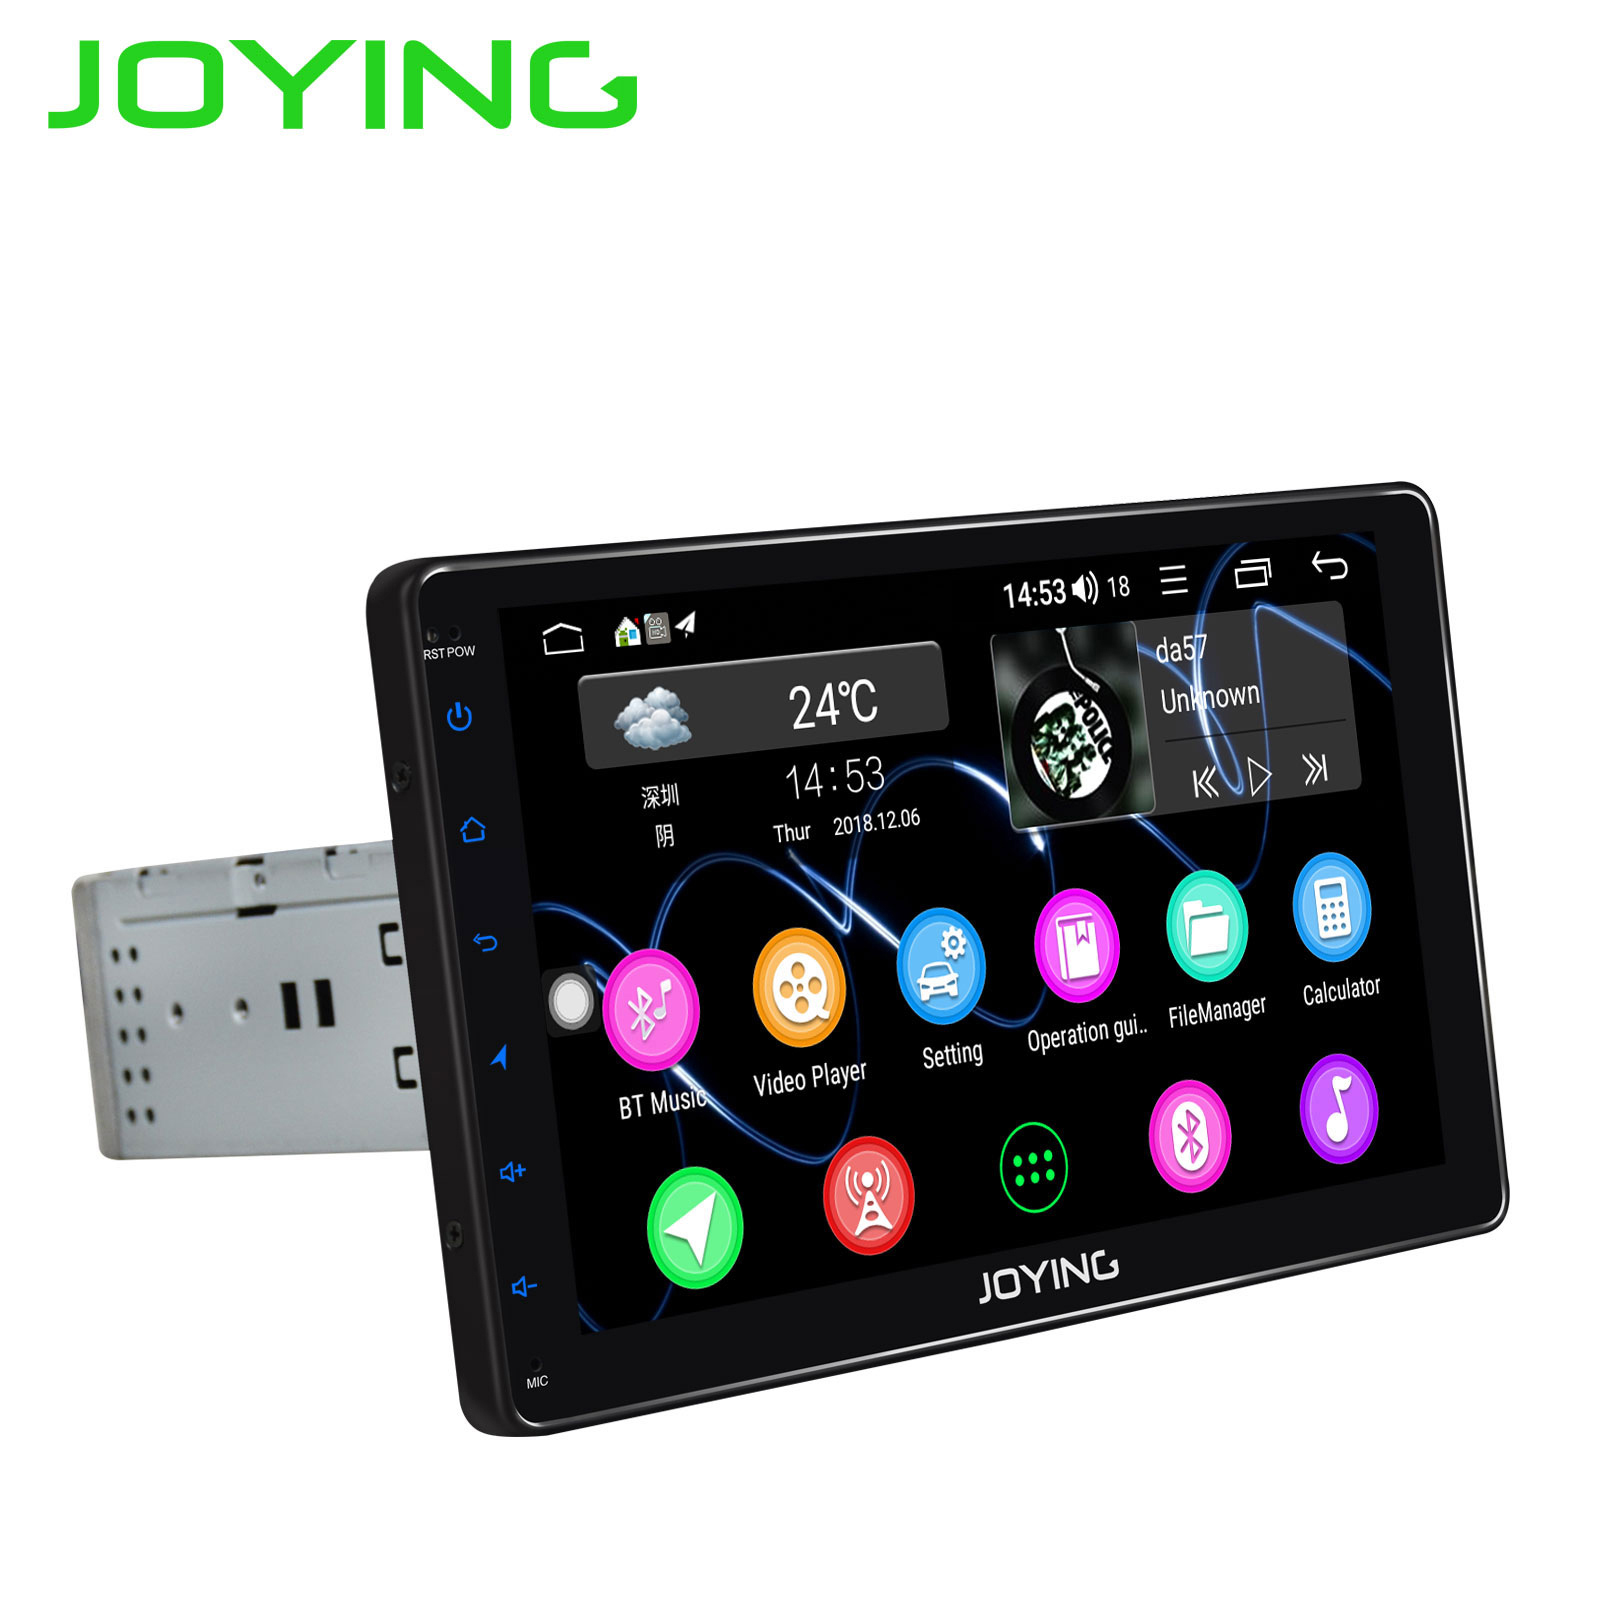 JOYING 2GB 32GB Car radio player Octa Core Android 8 1 universal car multimedia 9 Support